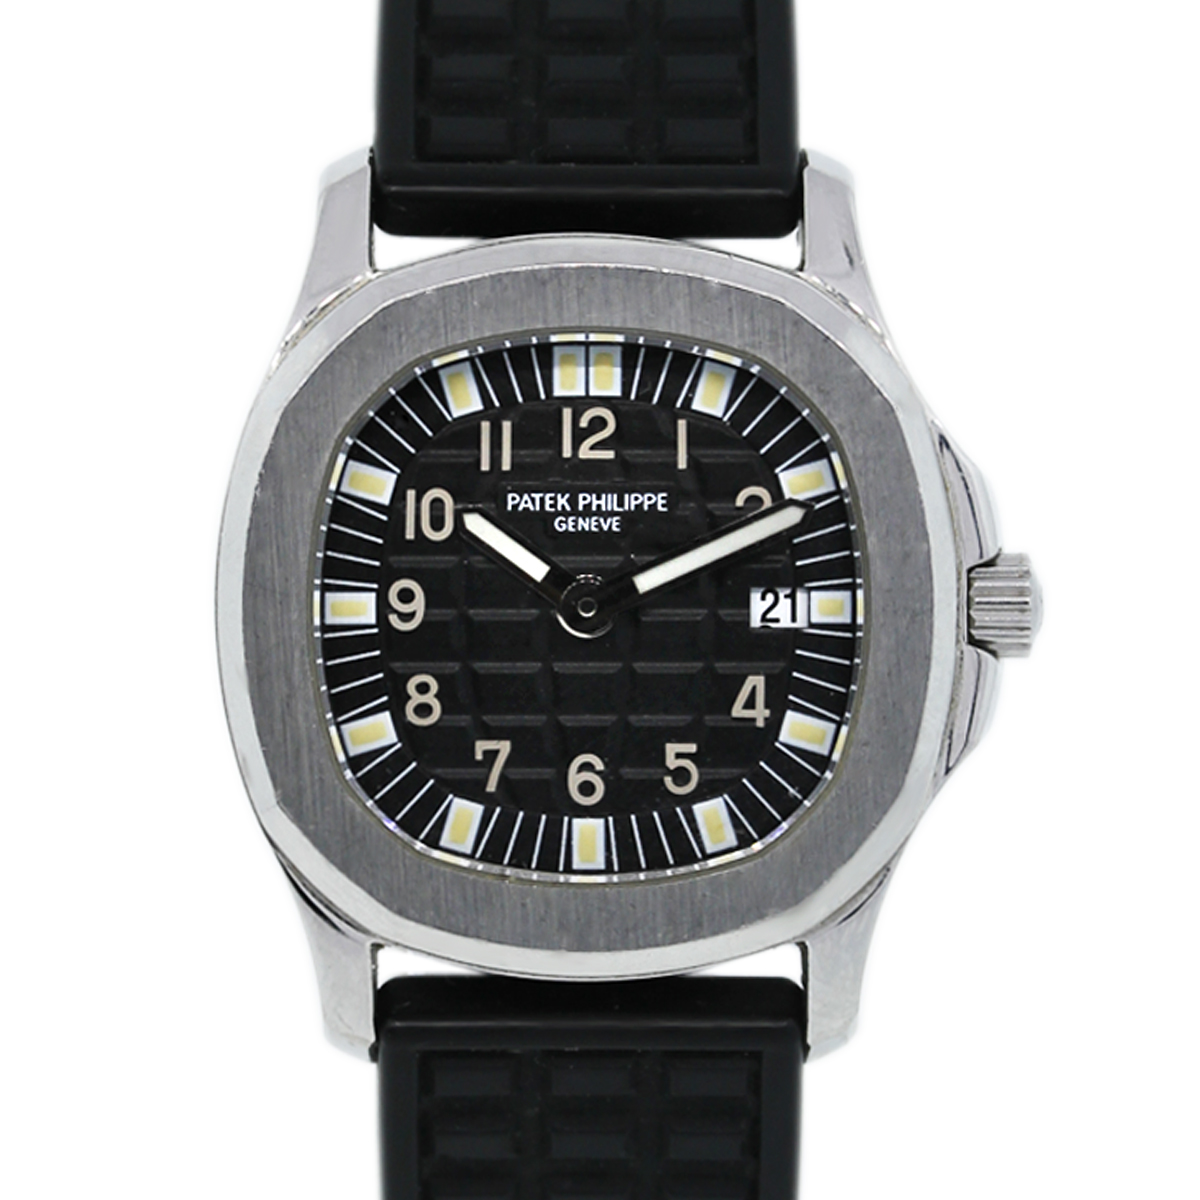 You are Viewing this Stunning Ladies Aquanaut Watch